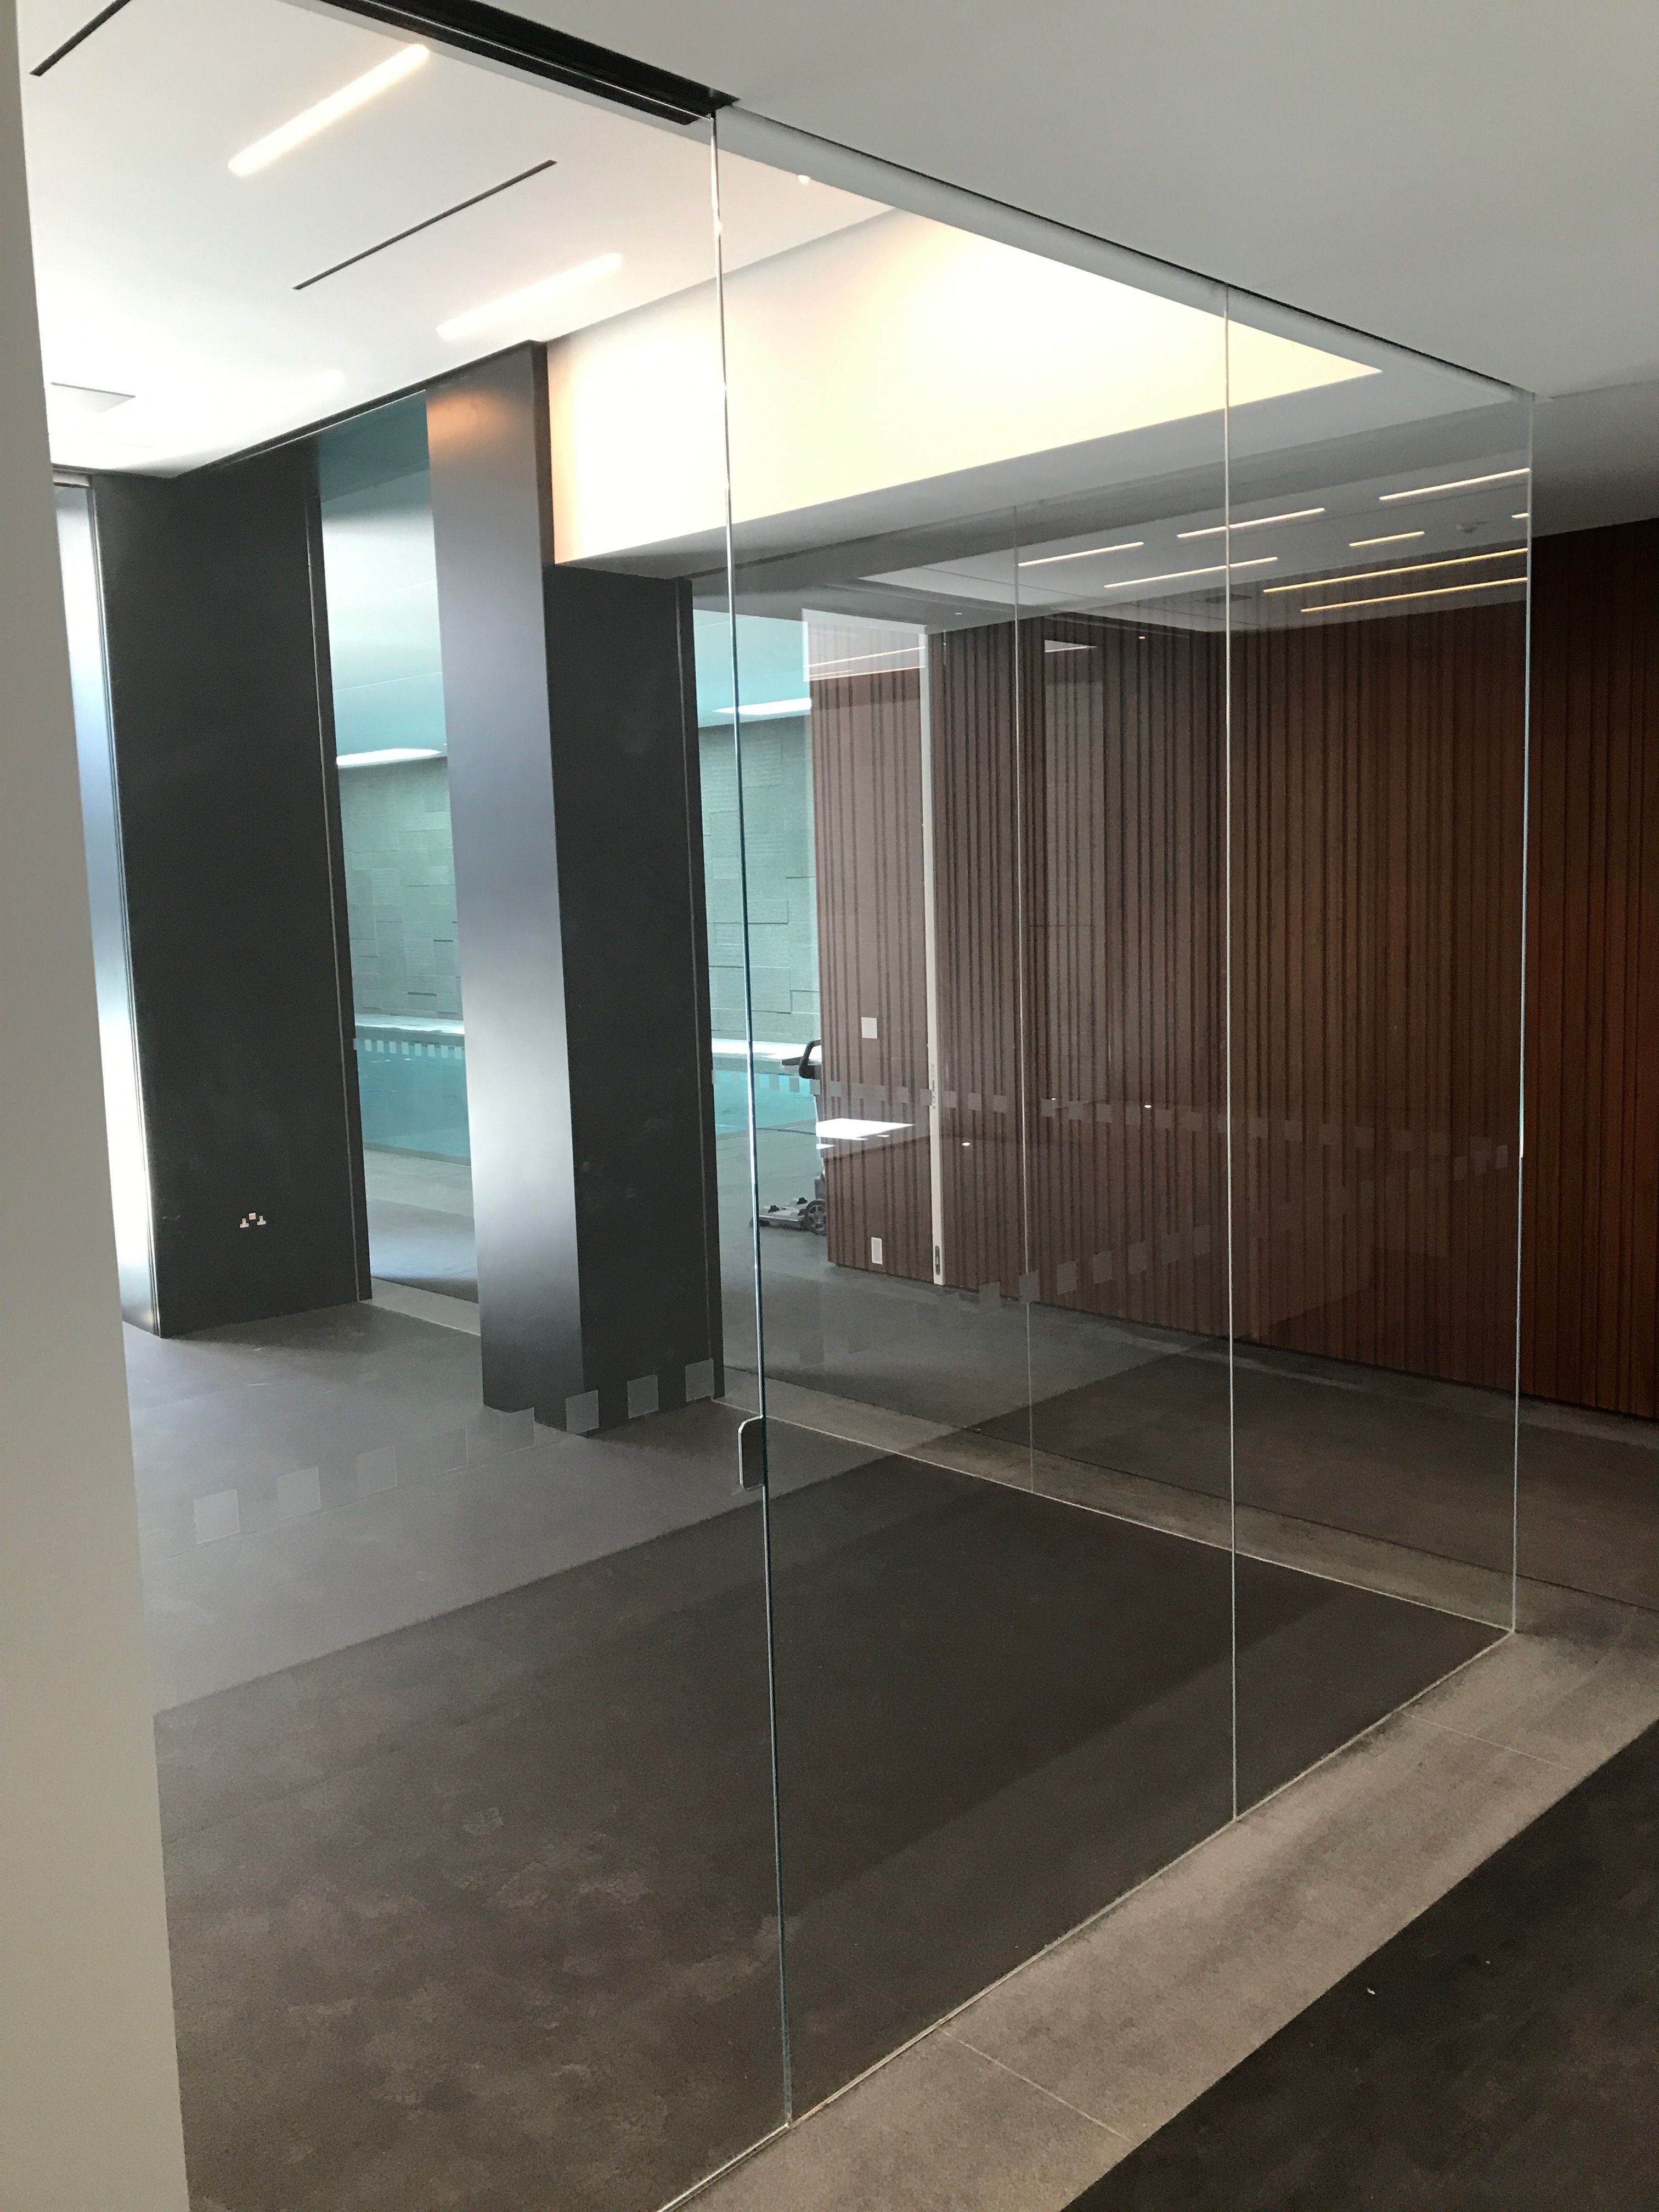 Frameless glass gym area partitioning, low-iron glass slotted into ...